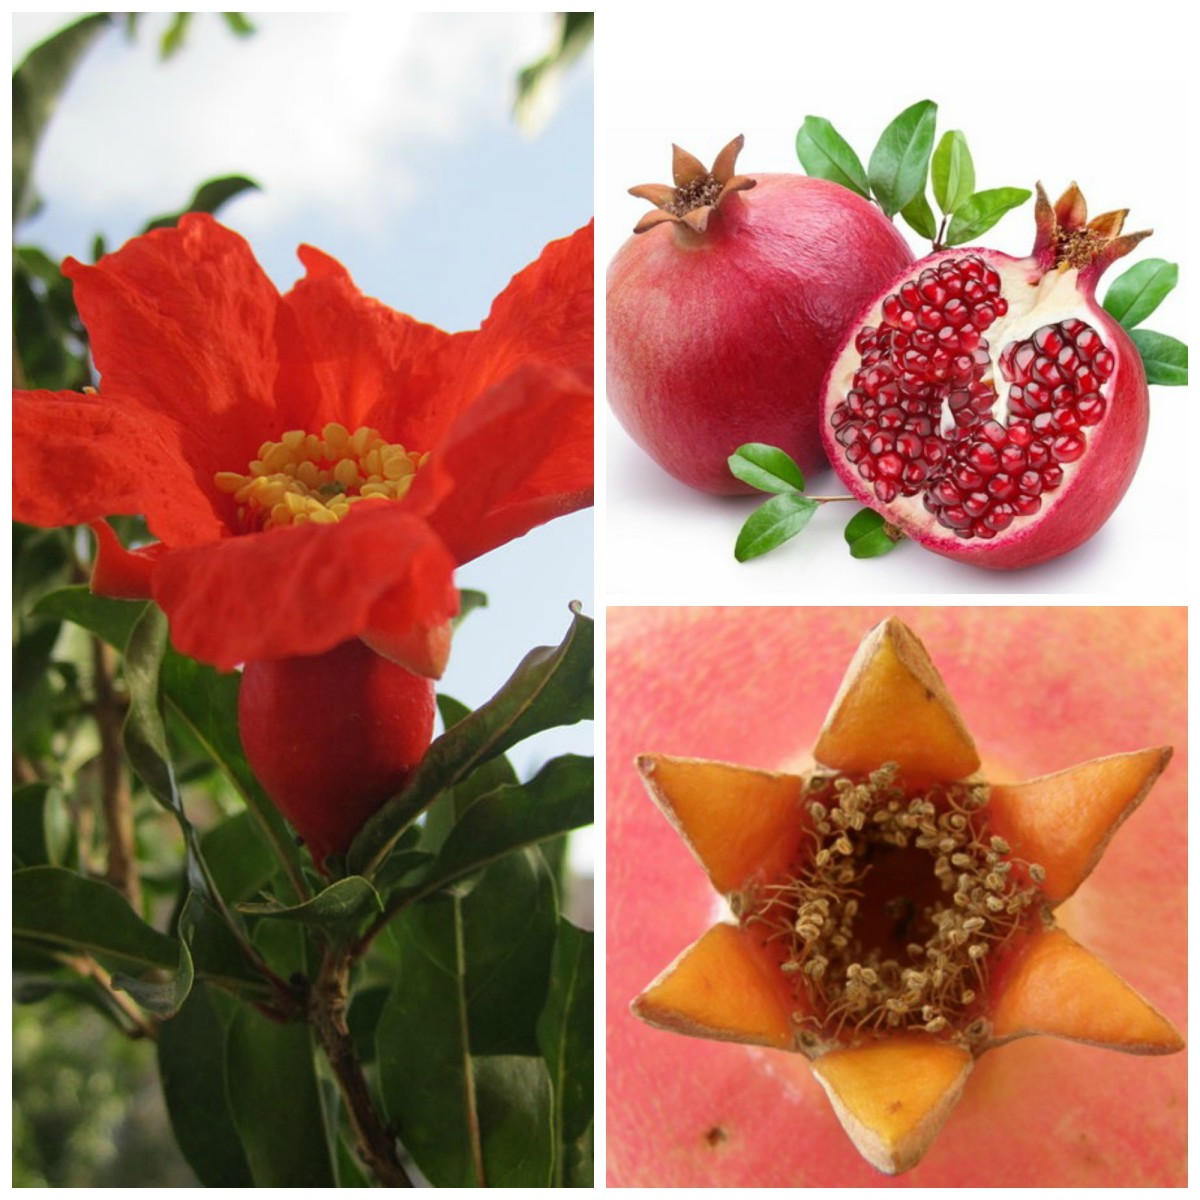 Pomegranate Tree Flower, Fruit and Pomegranate Crown